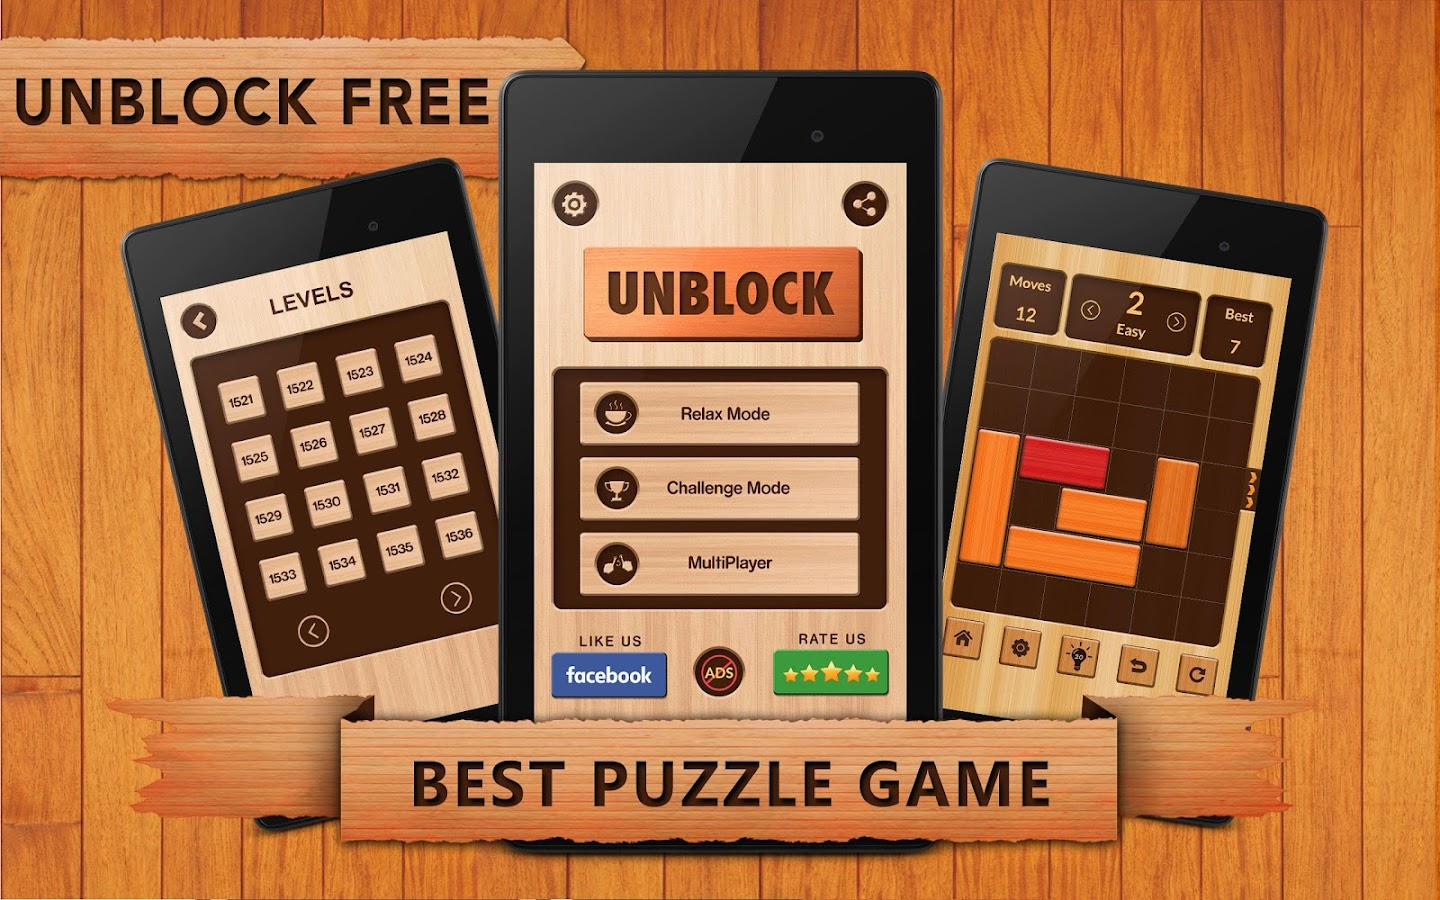 Unblock free best puzzle game android apps on google play